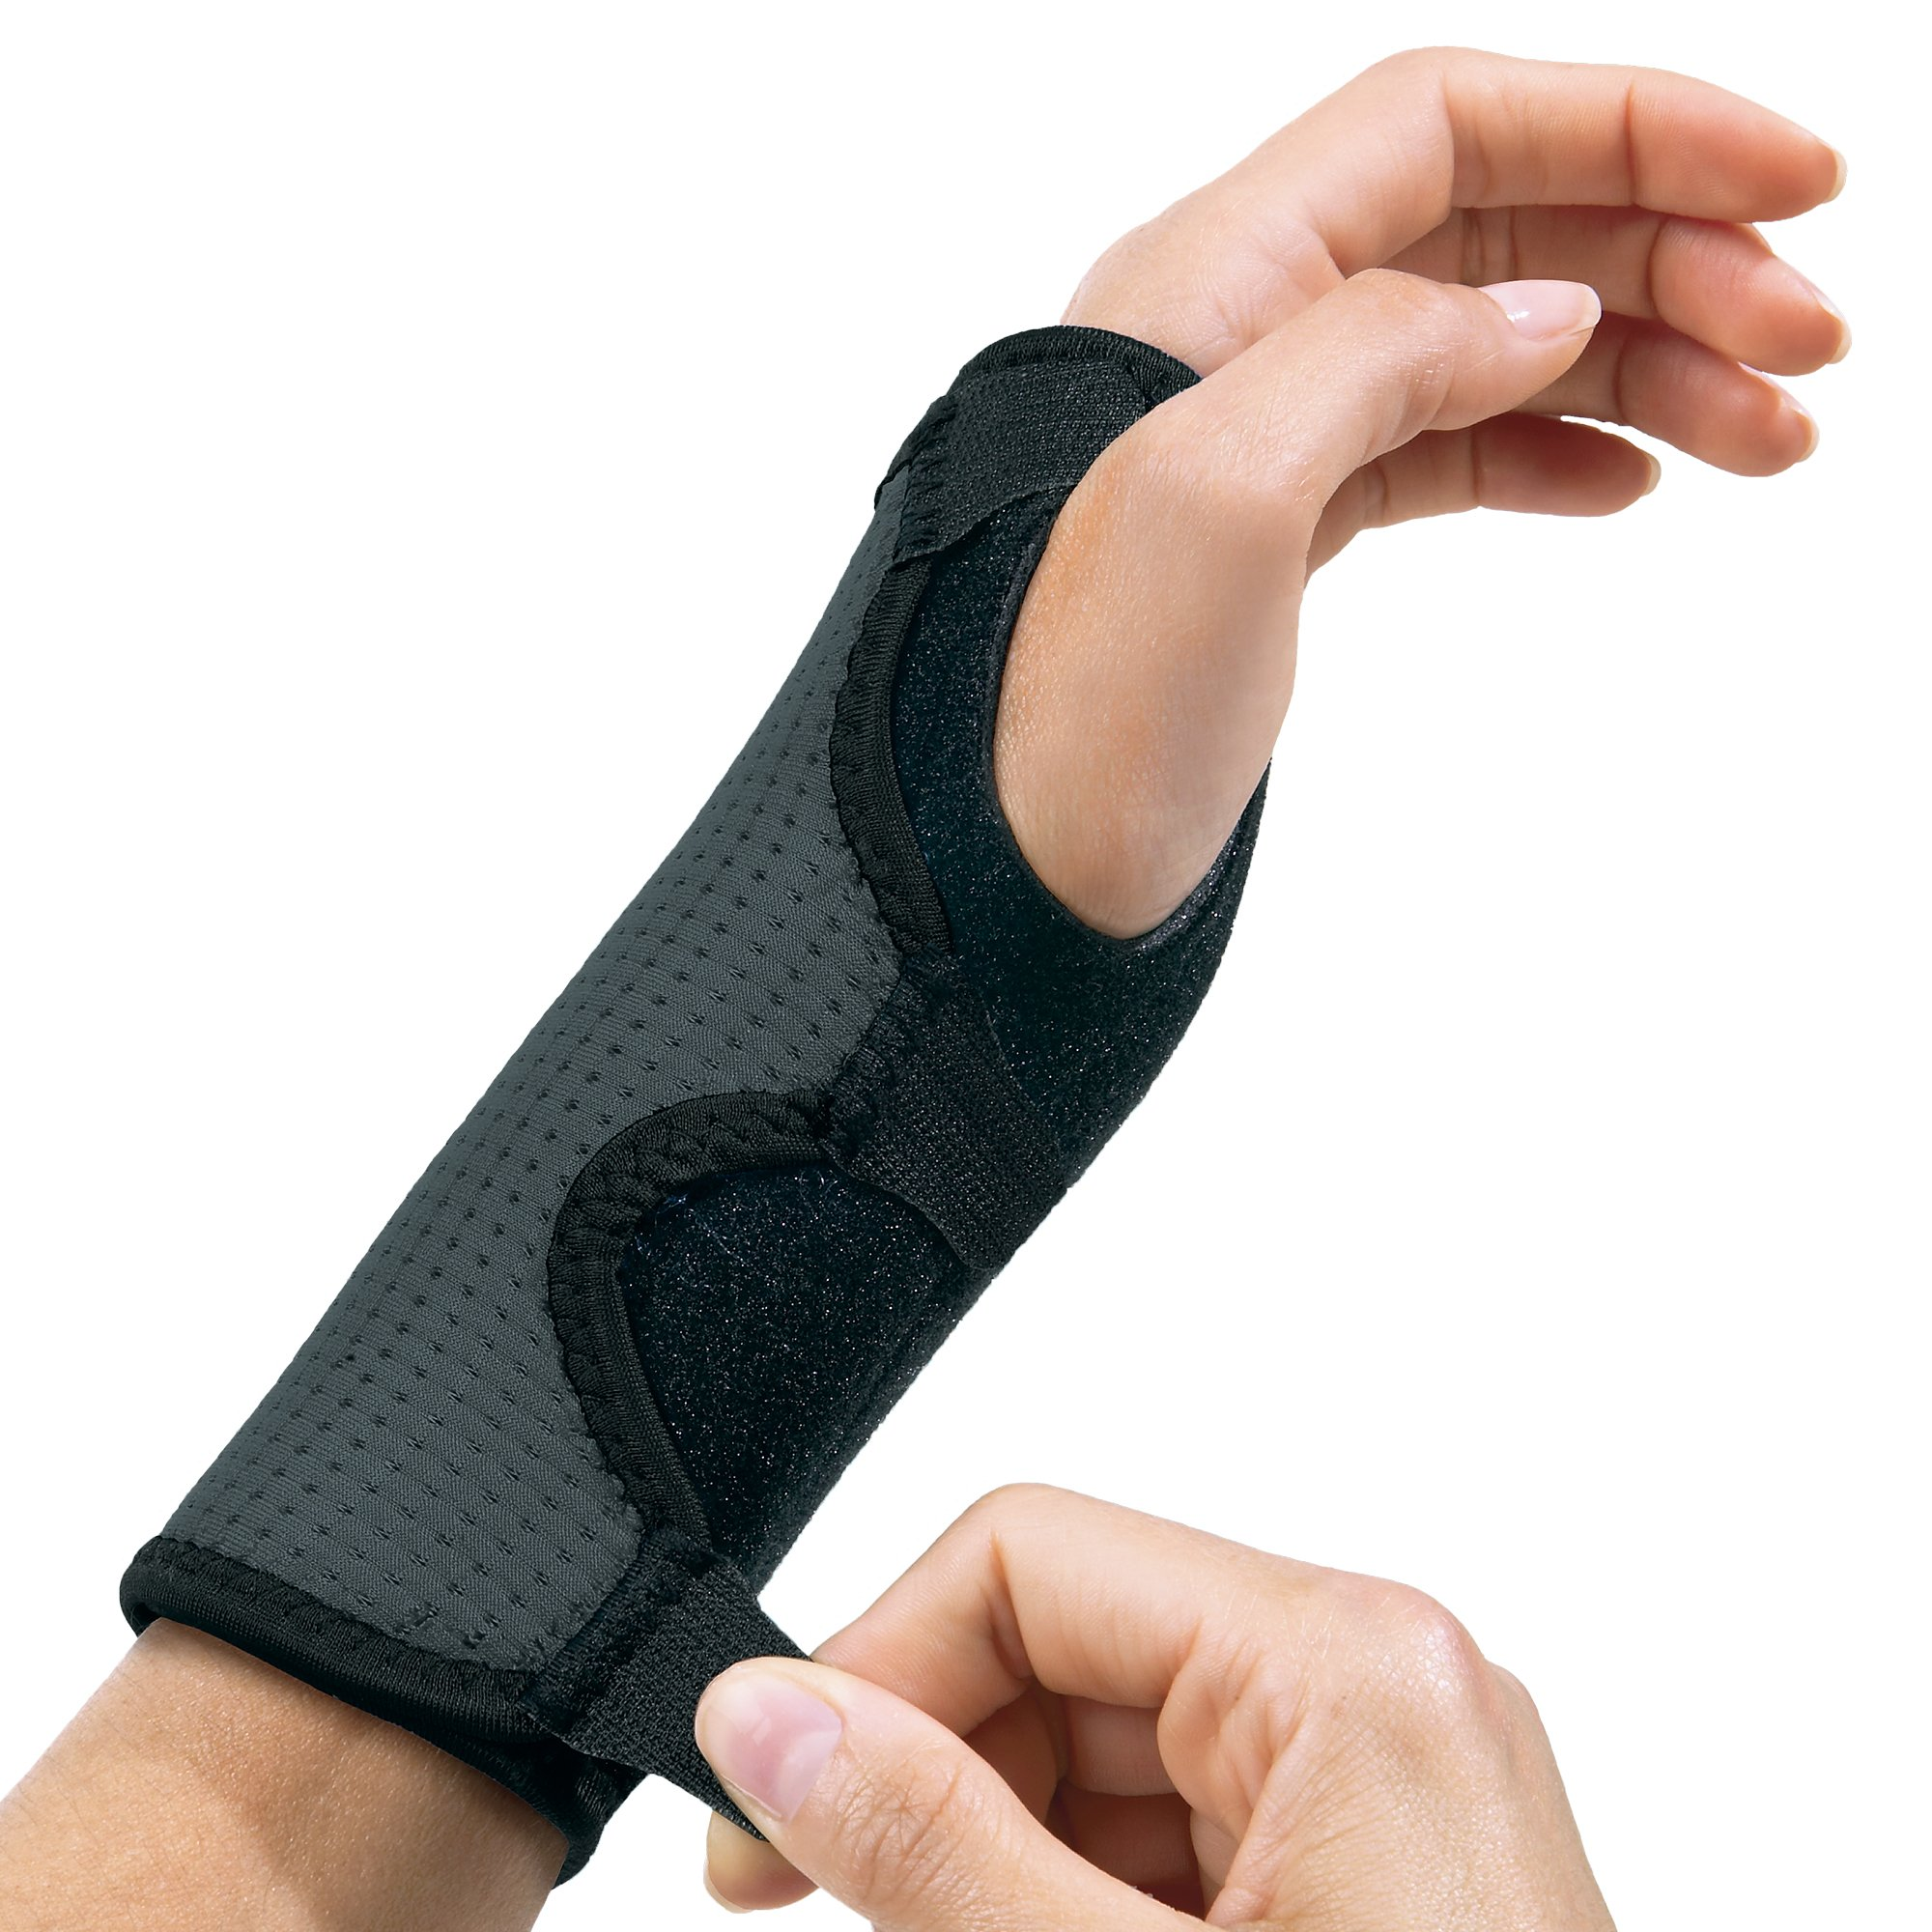 Futuro Reversible Splint Wrist Brace, Provides Support for Sore Wrists, Moderate Stabilizing Support, Adjustable, Black and Gray